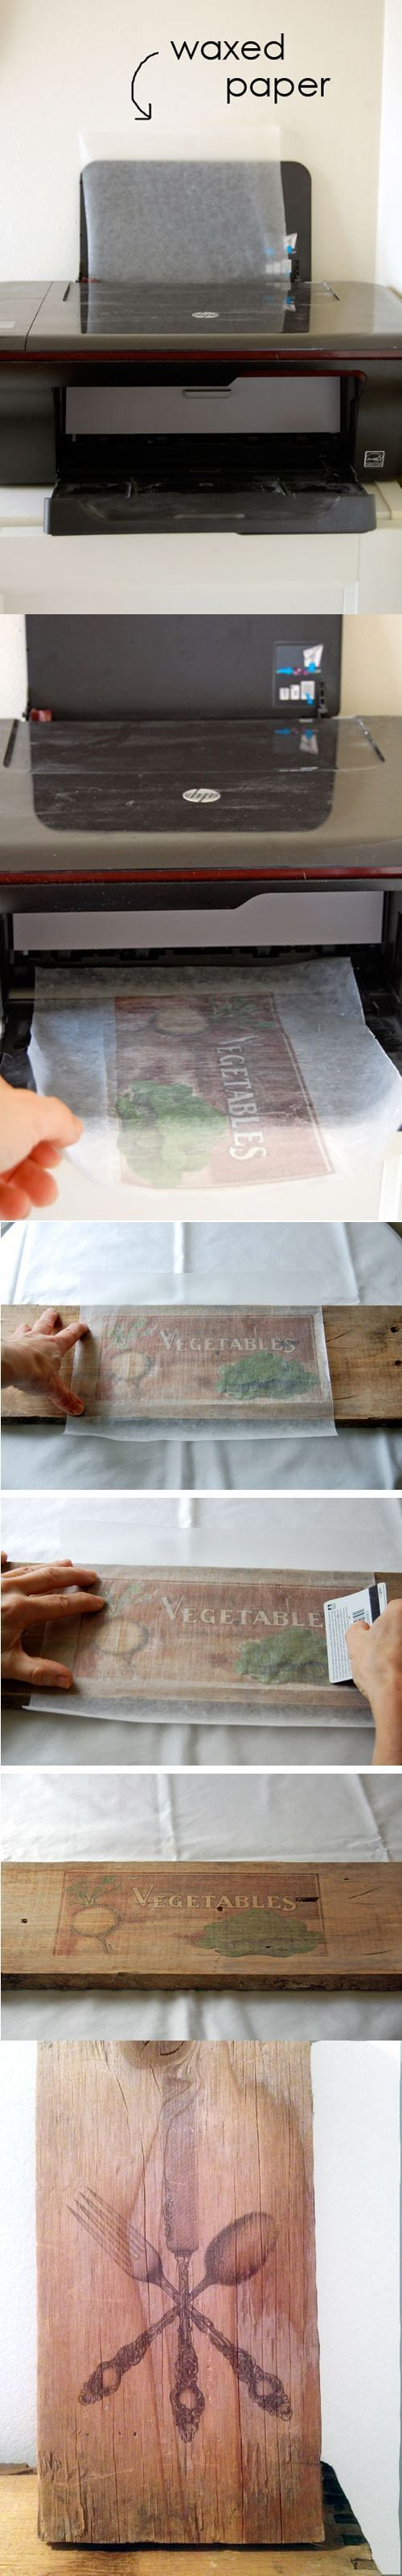 How to transfer a photo onto a slab of wood… for a unique diy photo display – from The Art of Doing Stuff.